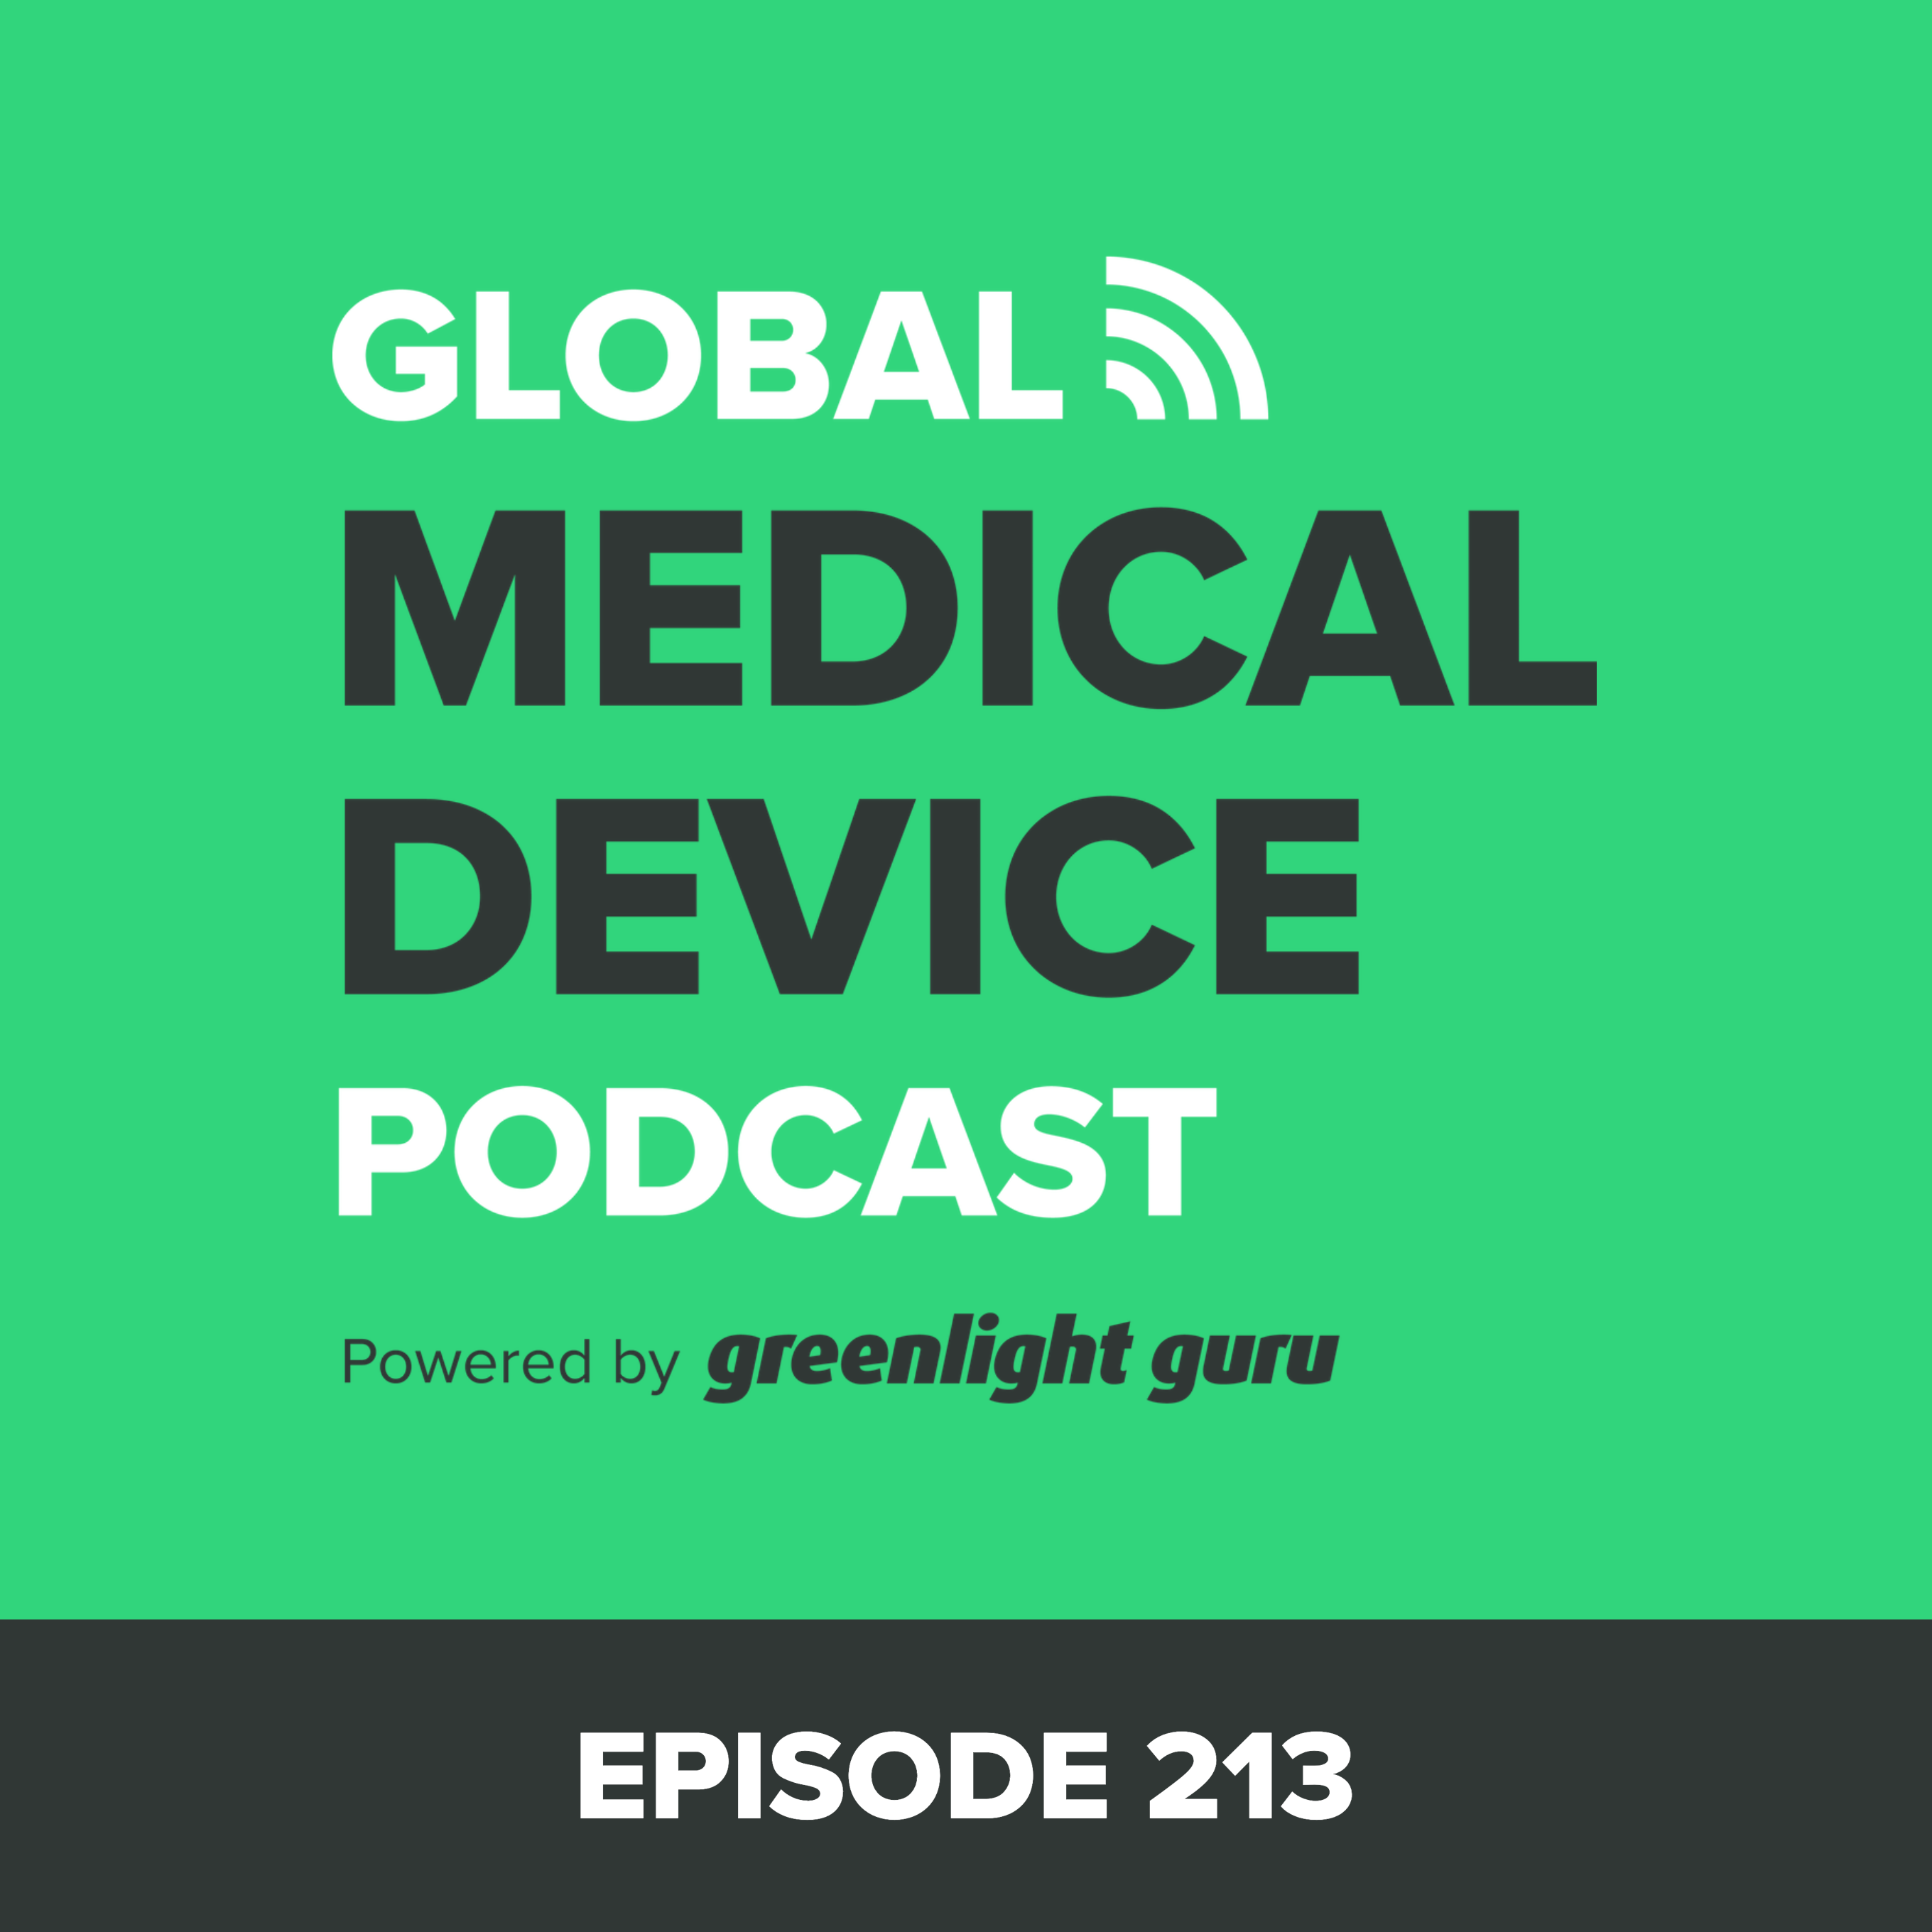 Top 3 Most Cited Issues in Medical Device Inspections from FDA FY2020